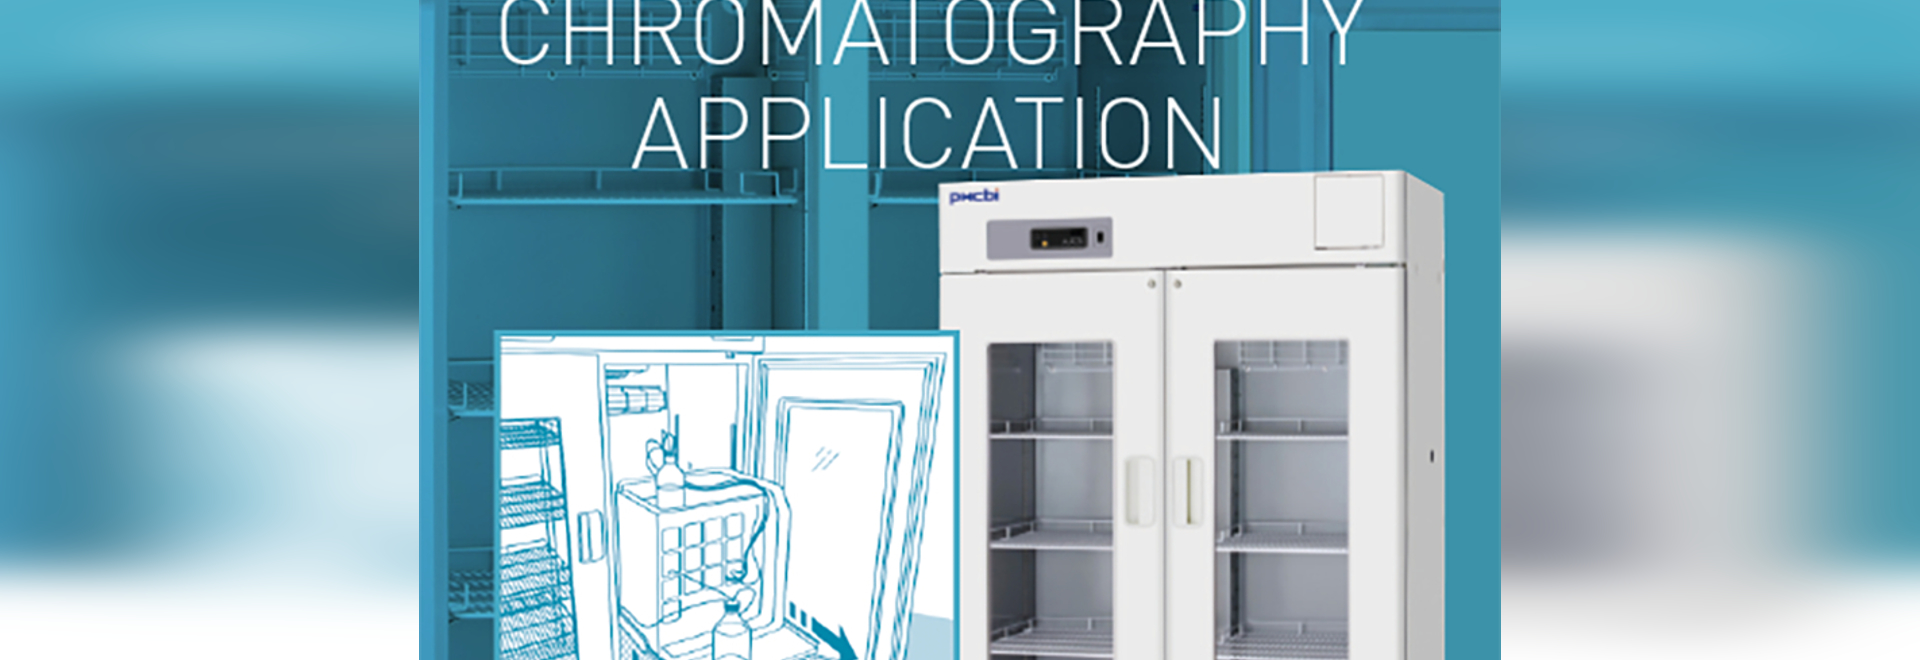 AUniform storage temperature for Chromatography applications